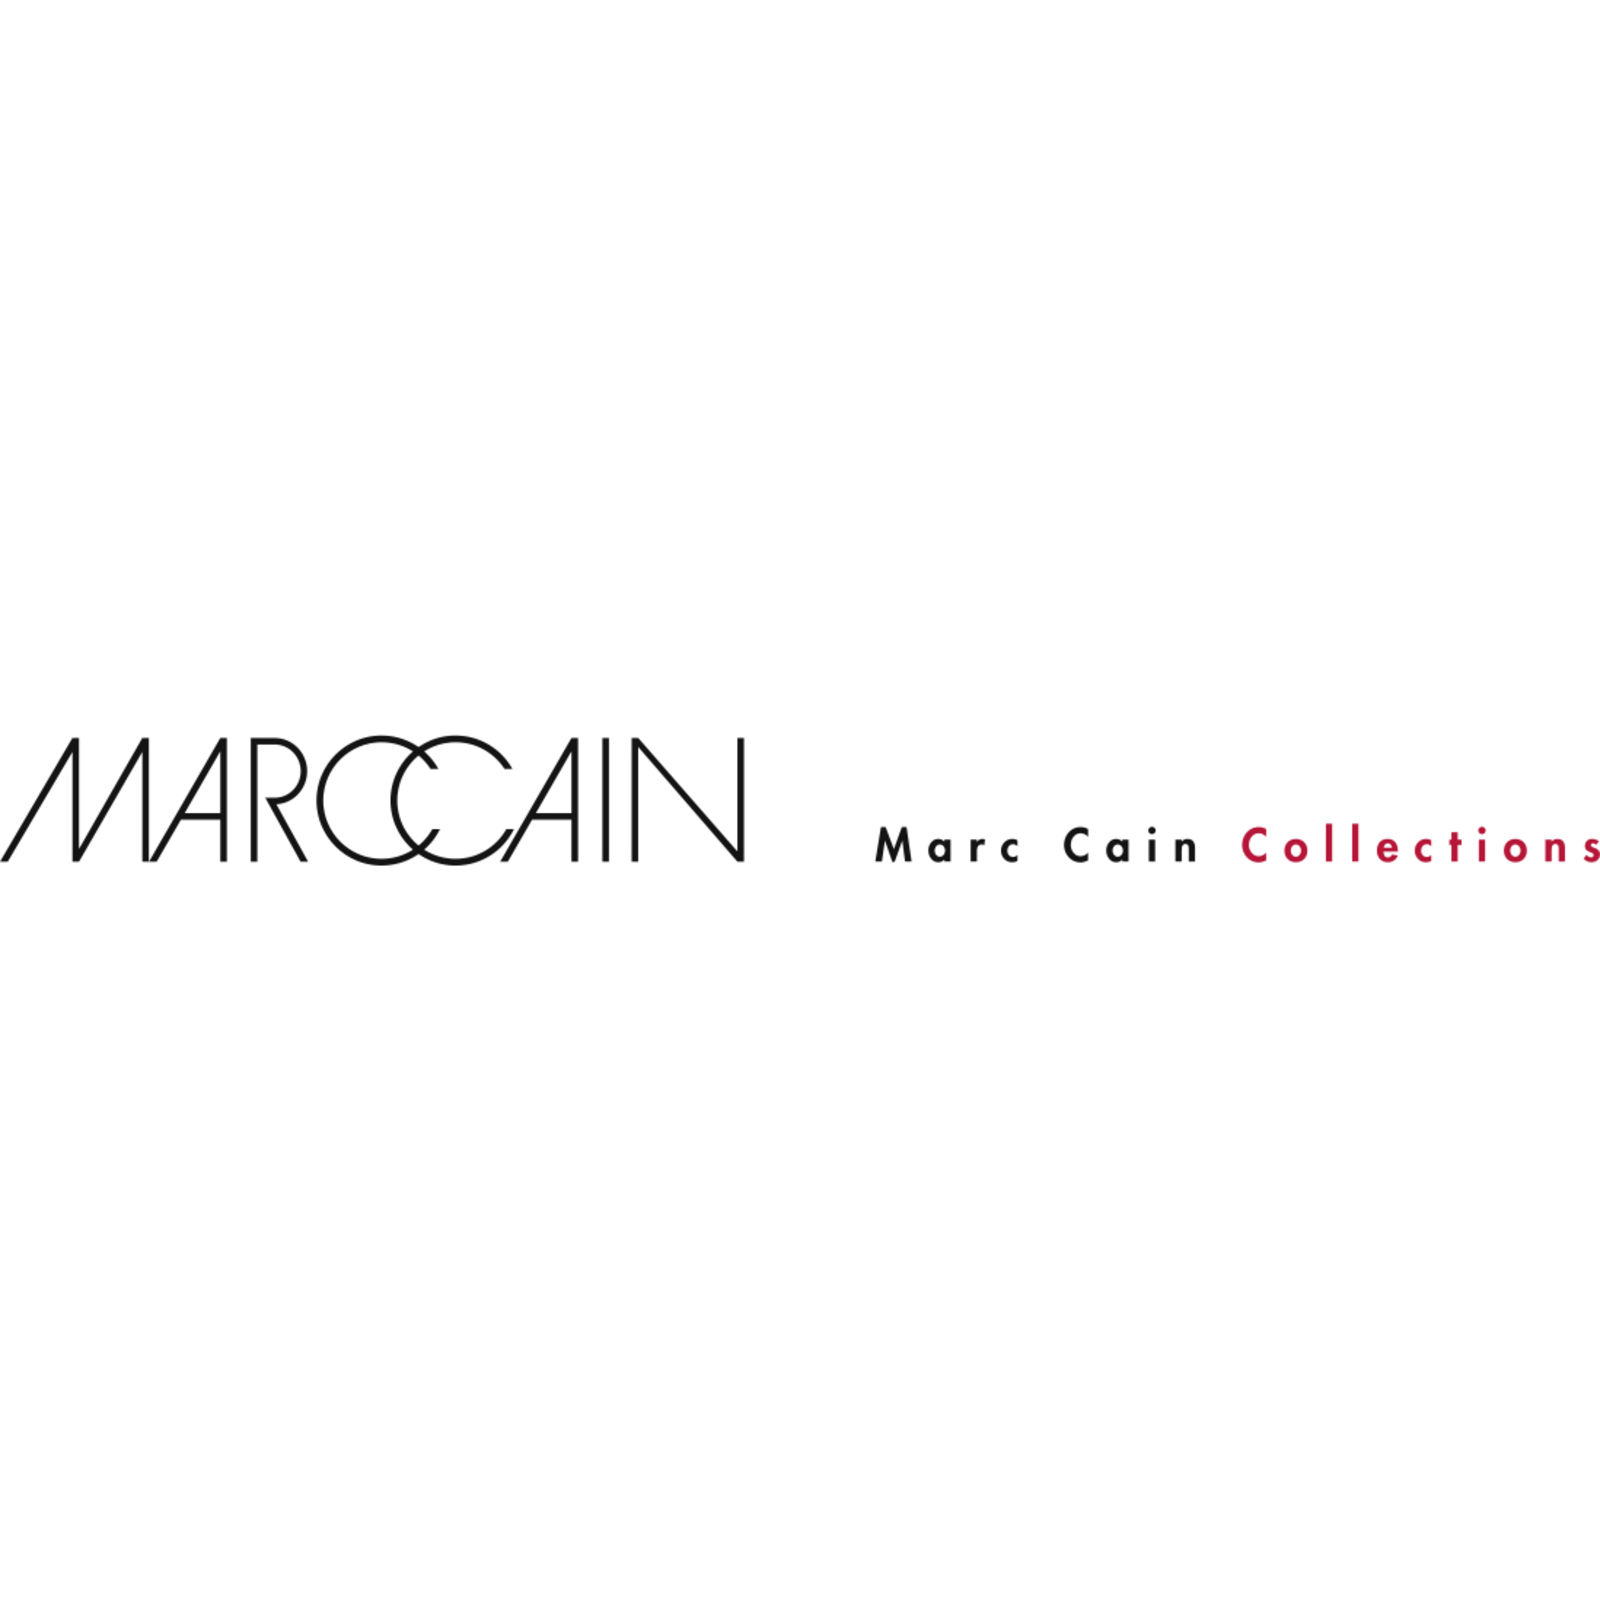 MARC CAIN COLLECTIONS (Bild 1)